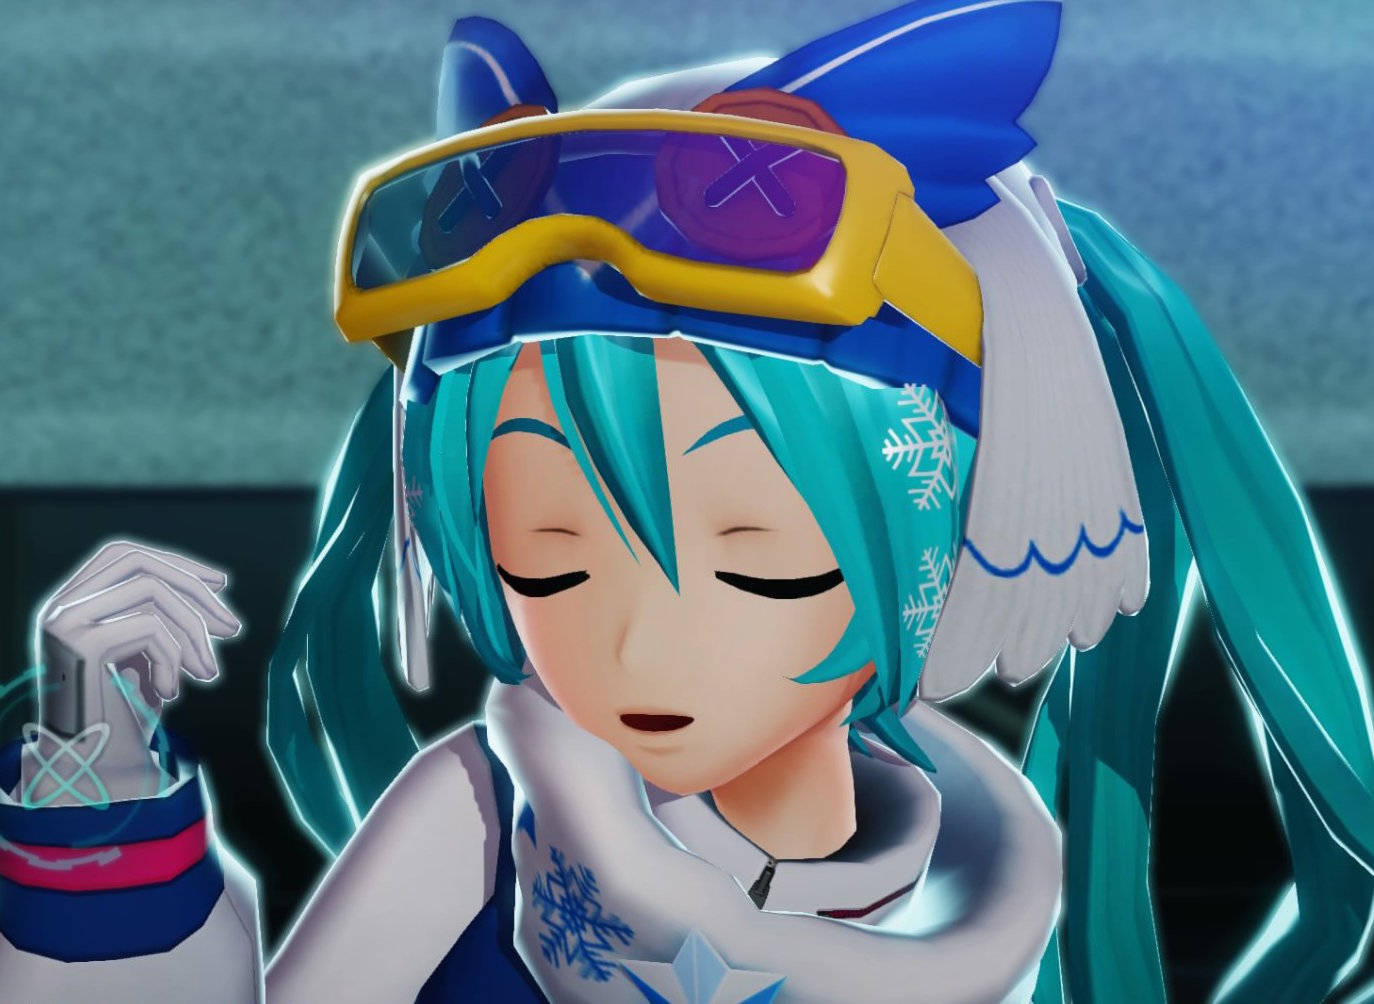 Hatsune miku project diva x dlc wrap the good bad and stuff even fans should skip - Hatsune miku project diva ...